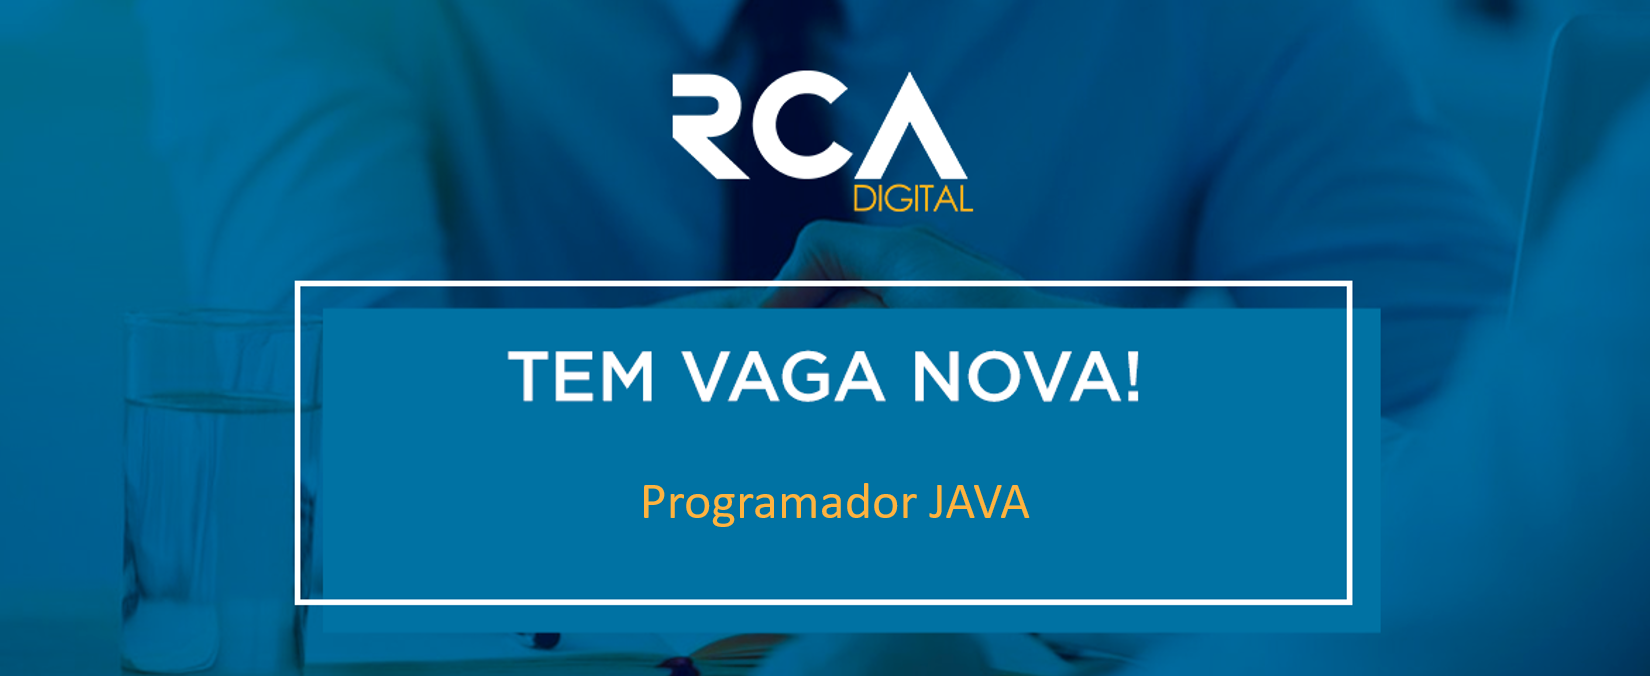 [RCA] Programador JAVA Júnior/Pleno